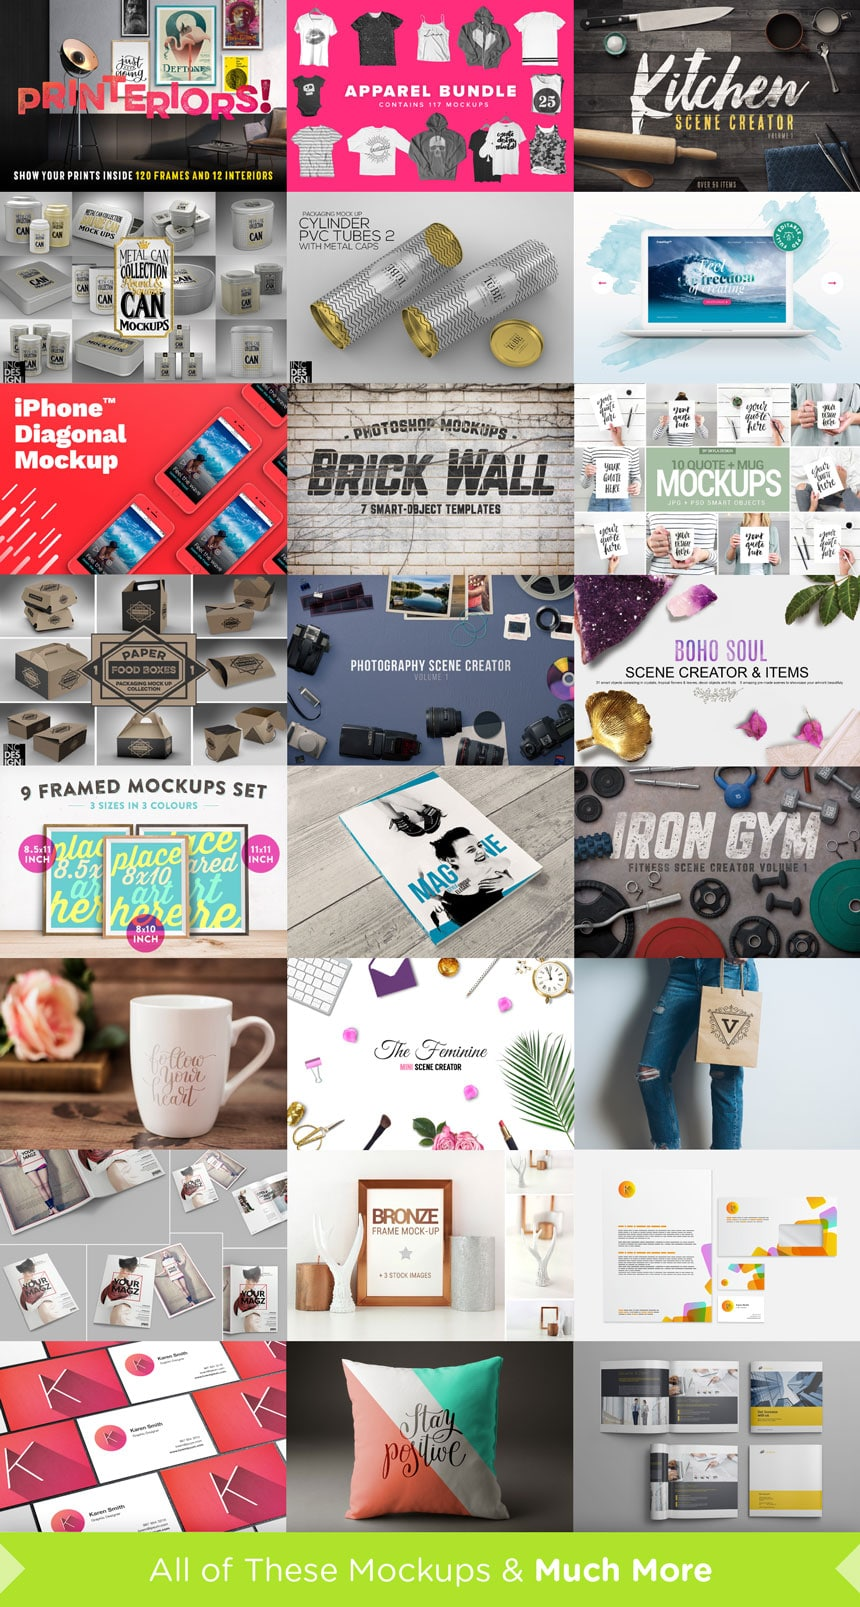 The Top Rated Mockups Collection ?? 97% Off